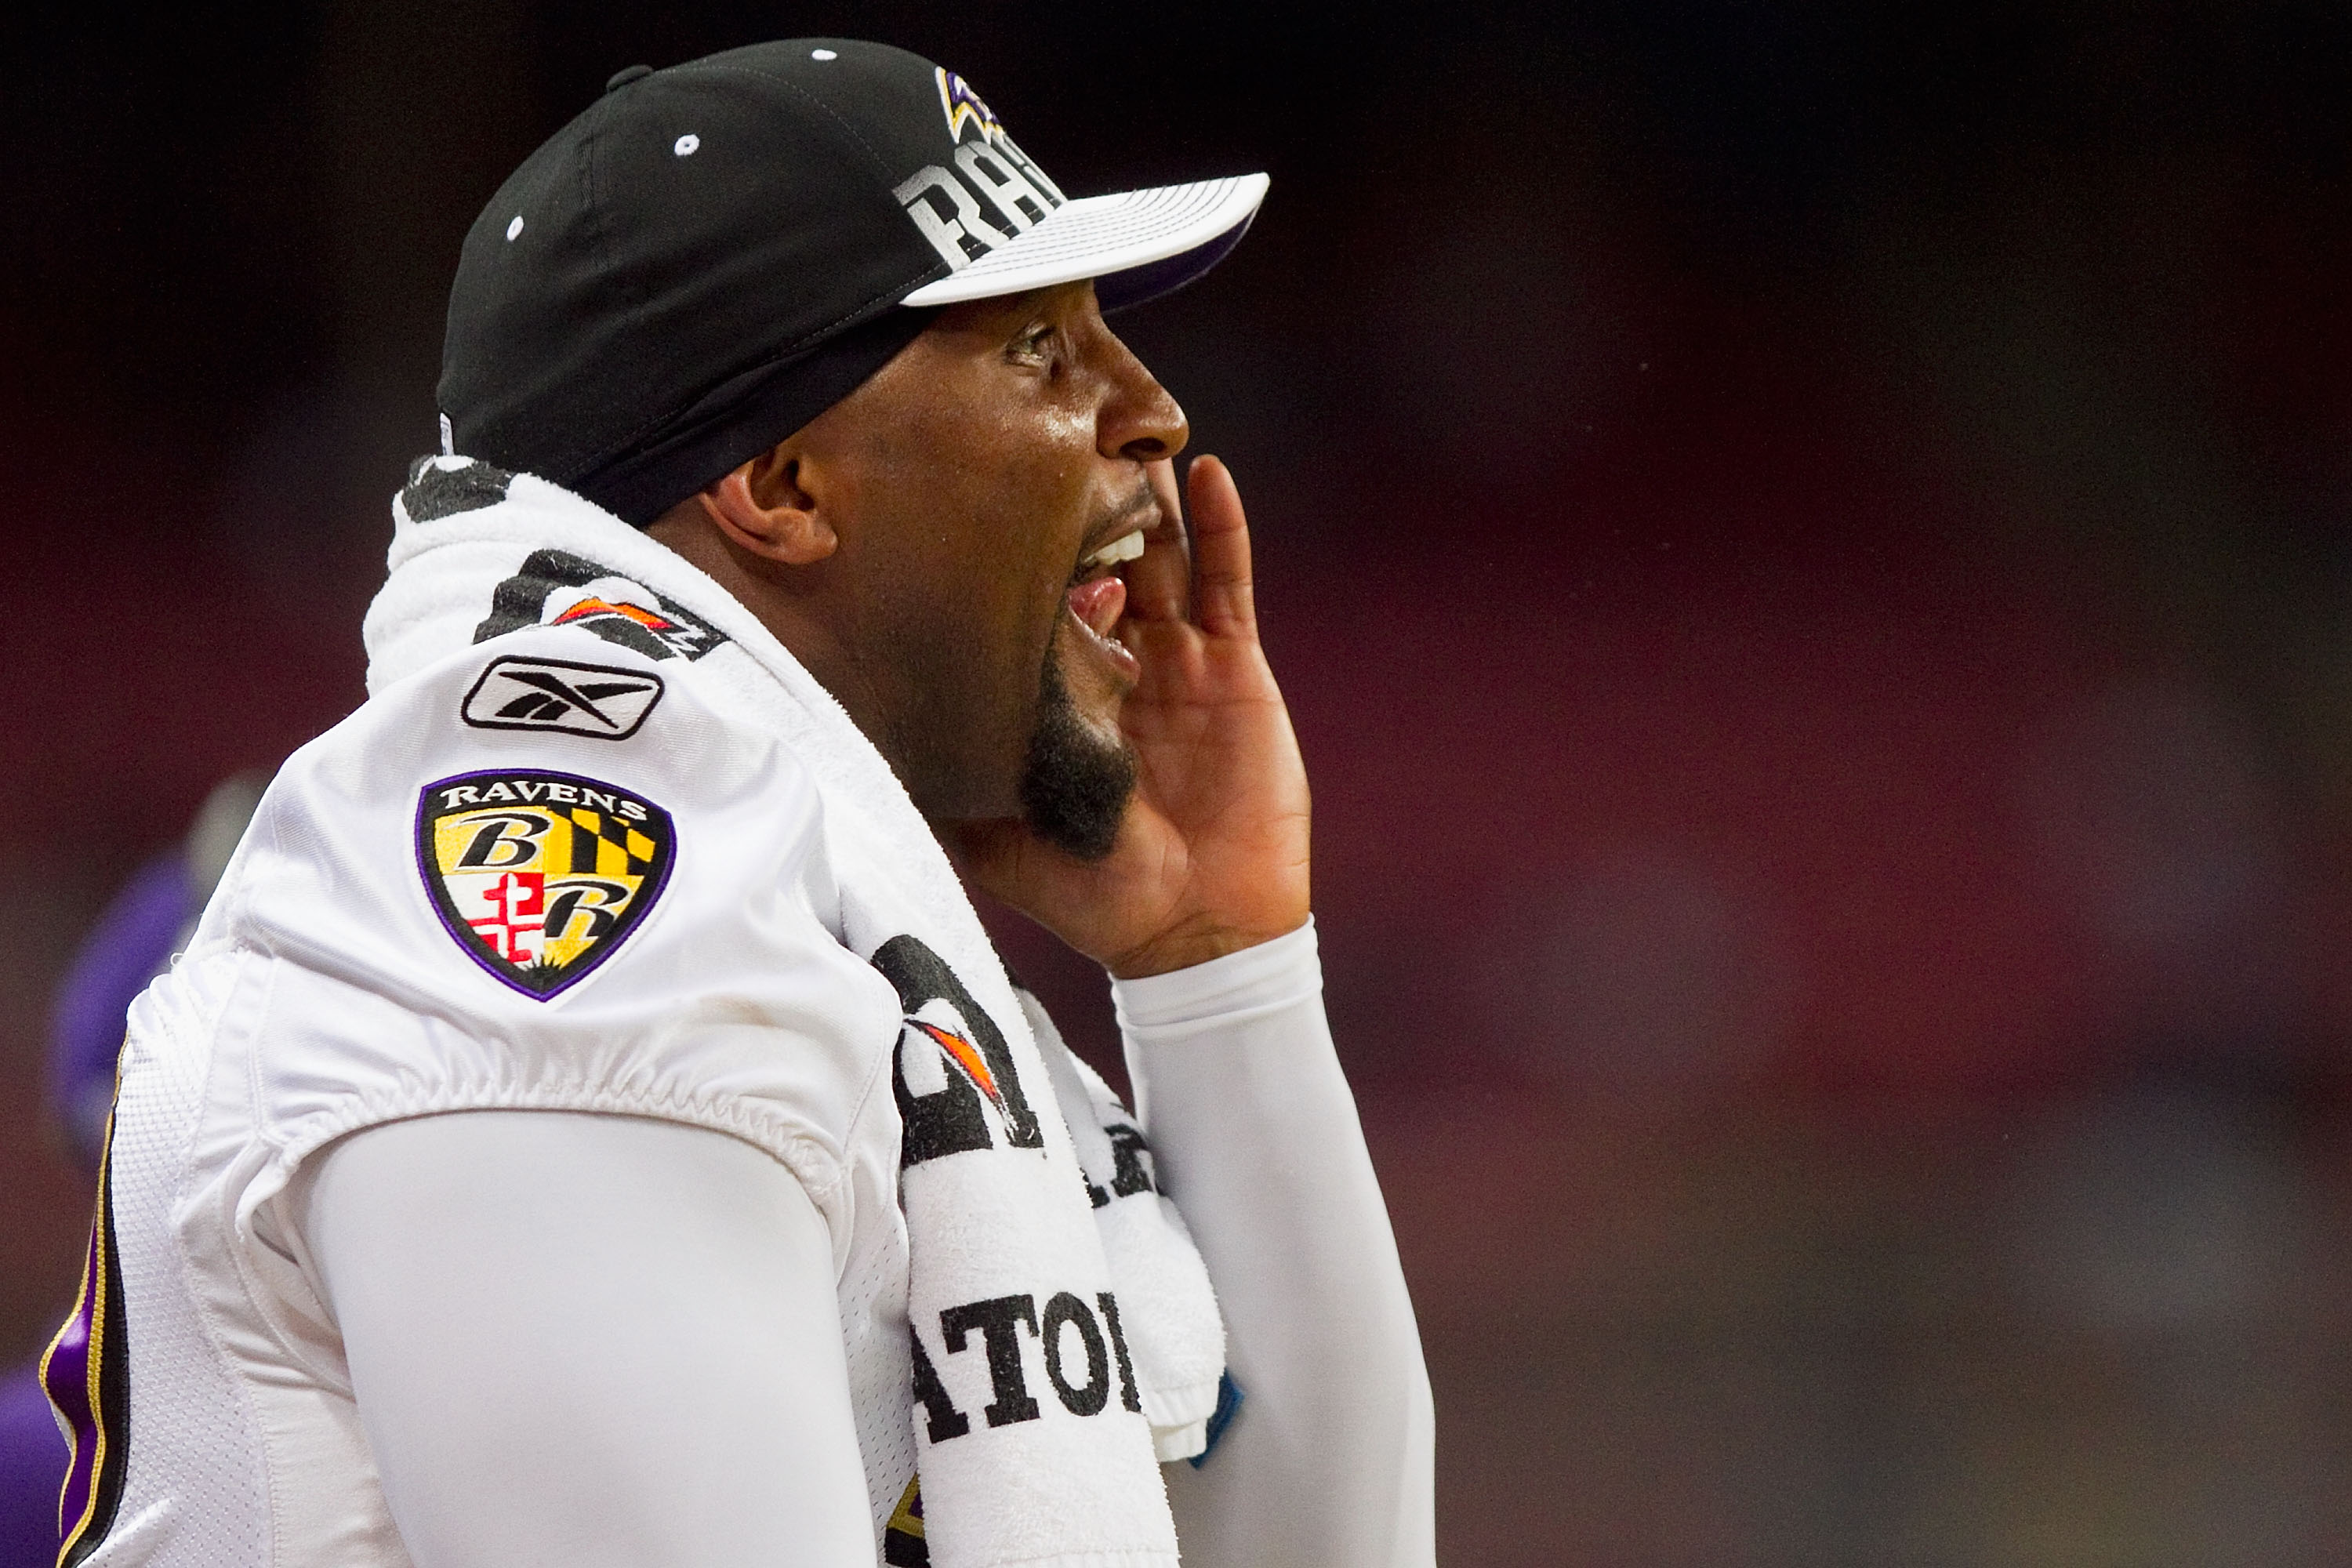 Ray Lewis is still the heart and soul of the Baltimore Ravens